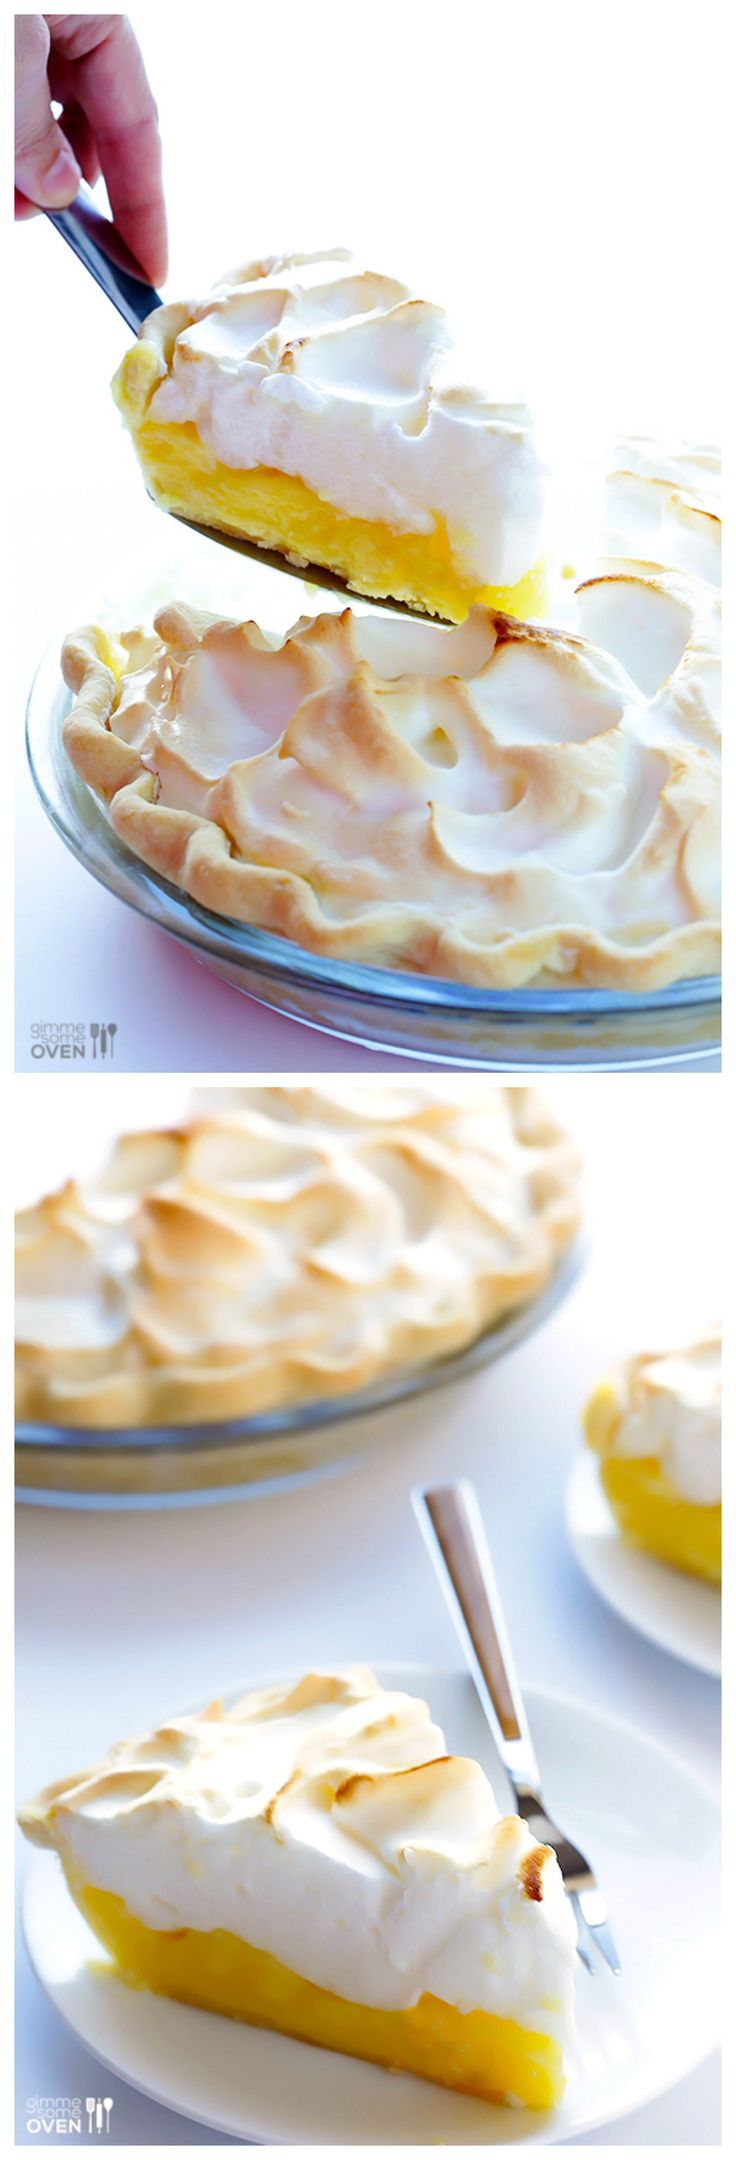 Lemon Meringue Pie -- learn how to make a fresh pie with this classic recipe!   gimmesomeoven.com #dessert #pie